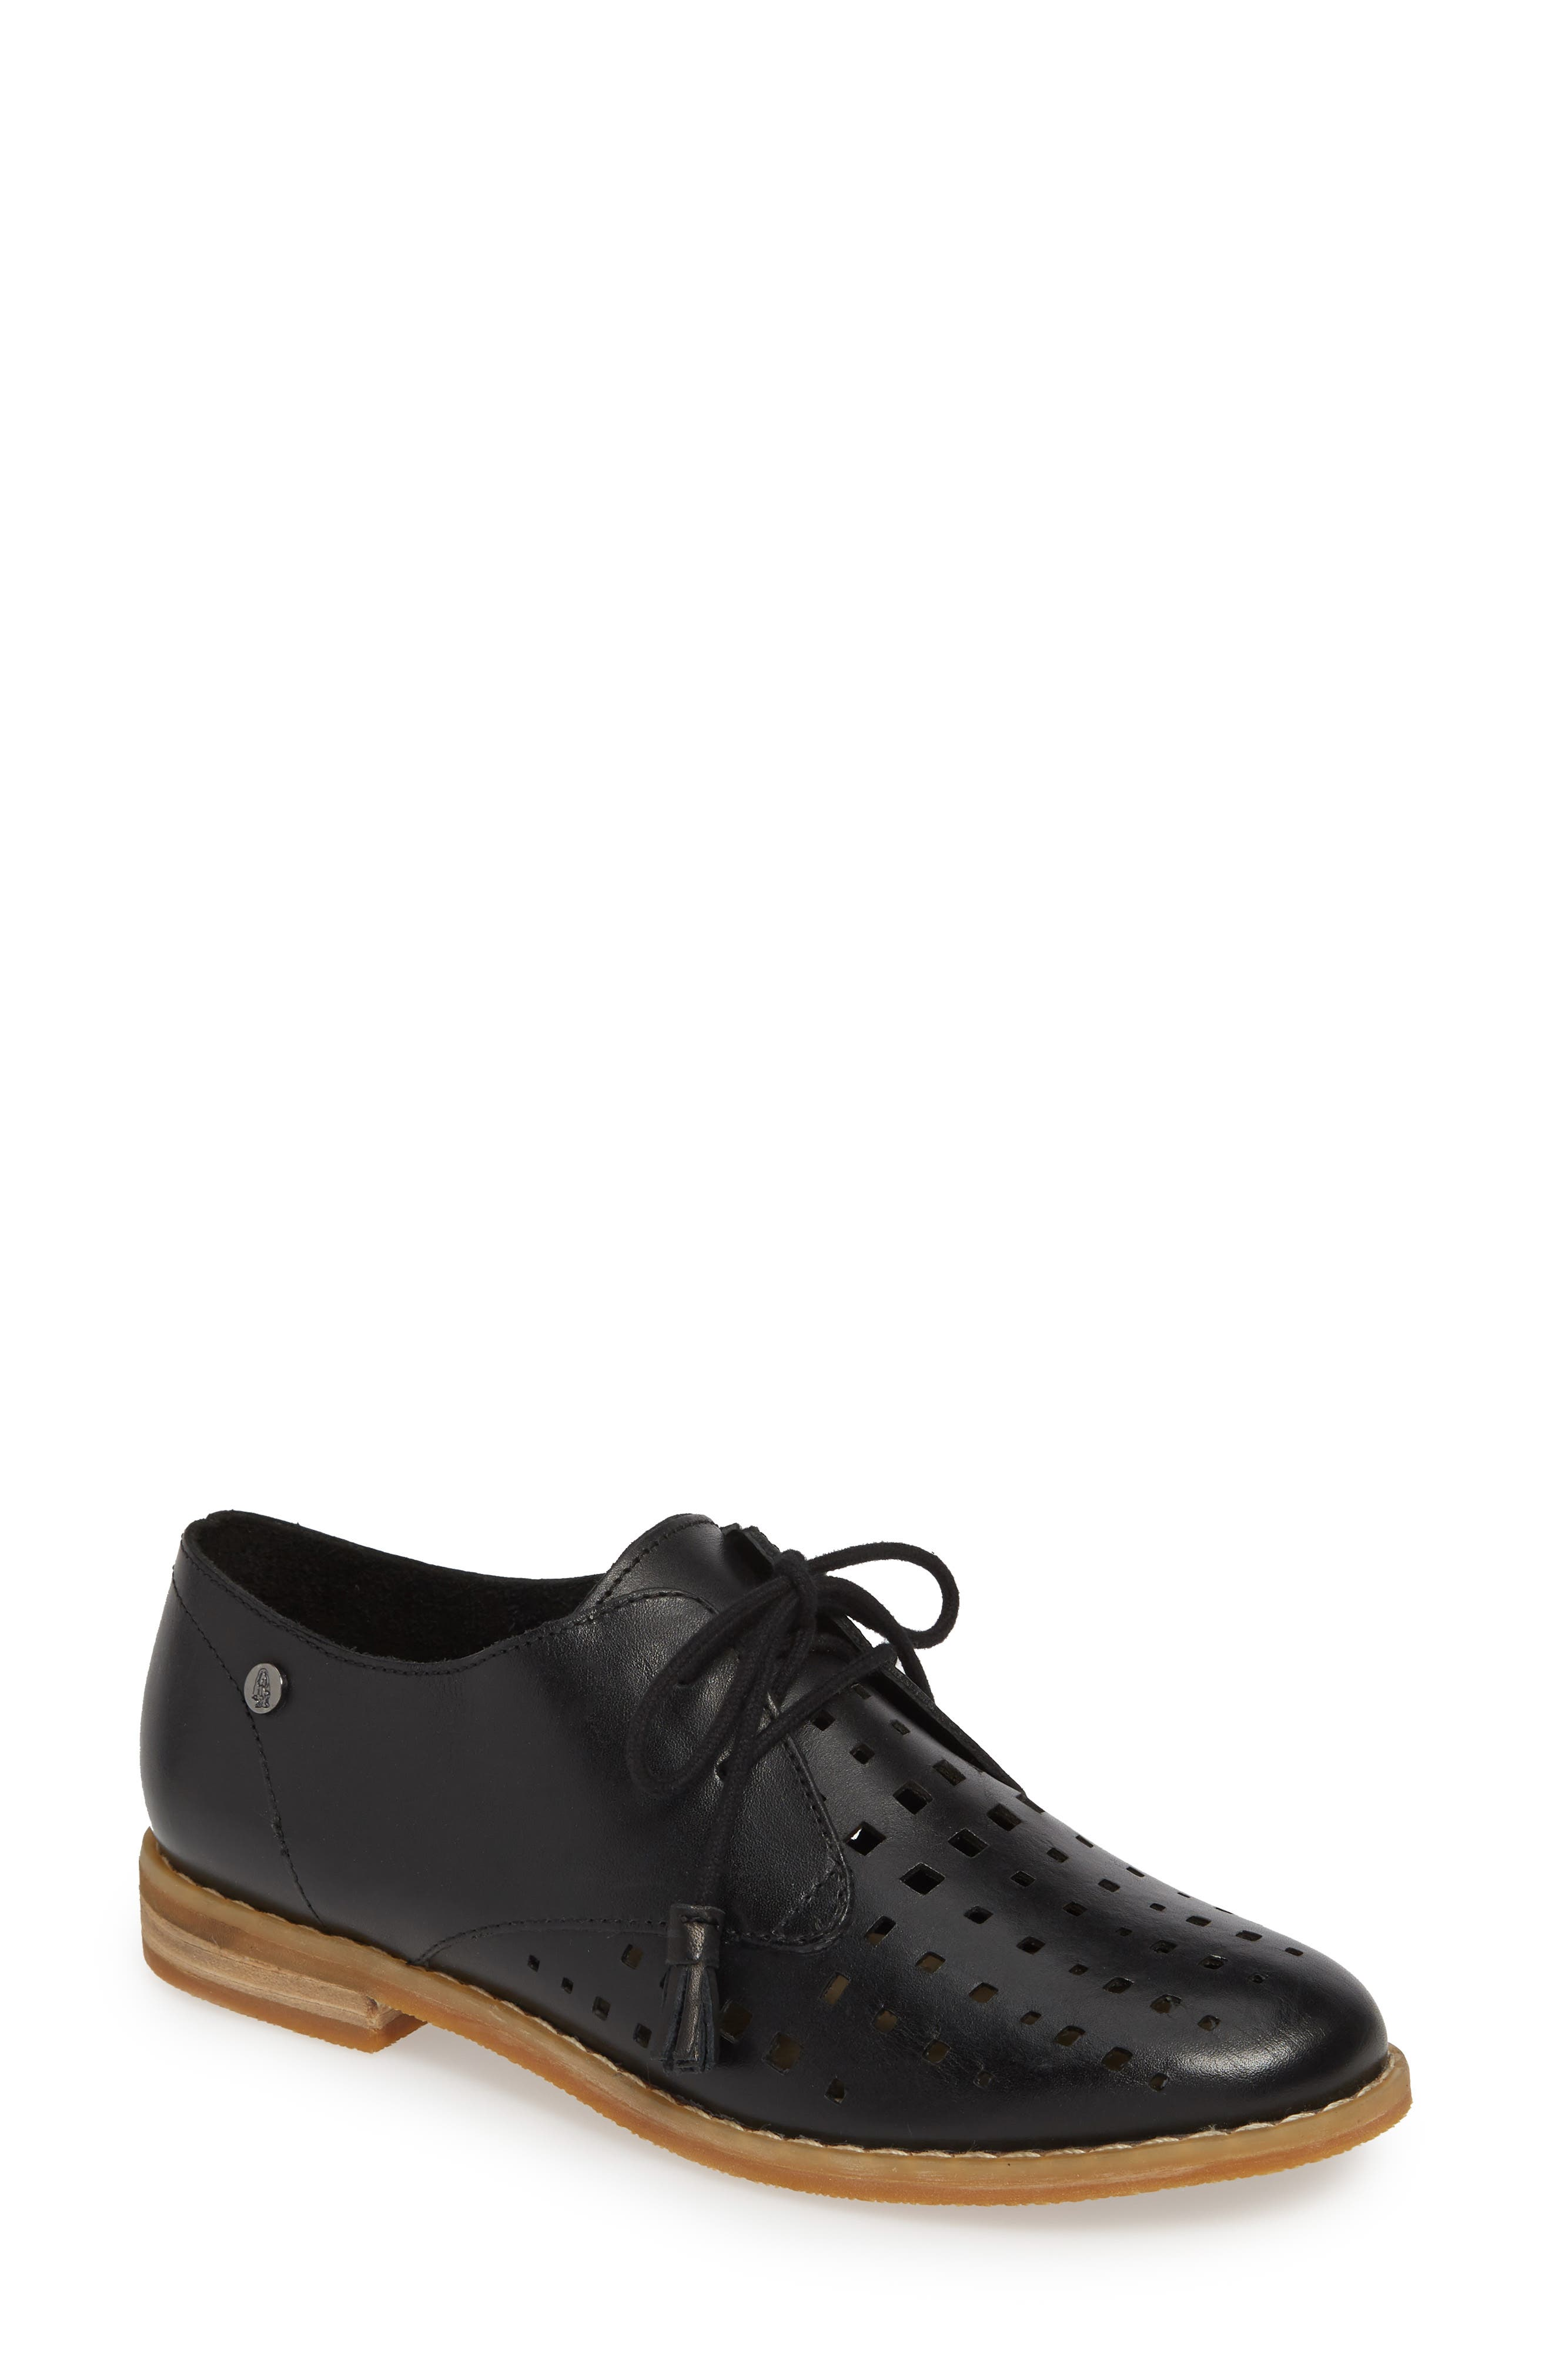 HUSH PUPPIES<SUP>®</SUP> Chardon Perforated Derby, Main, color, BLACK LEATHER